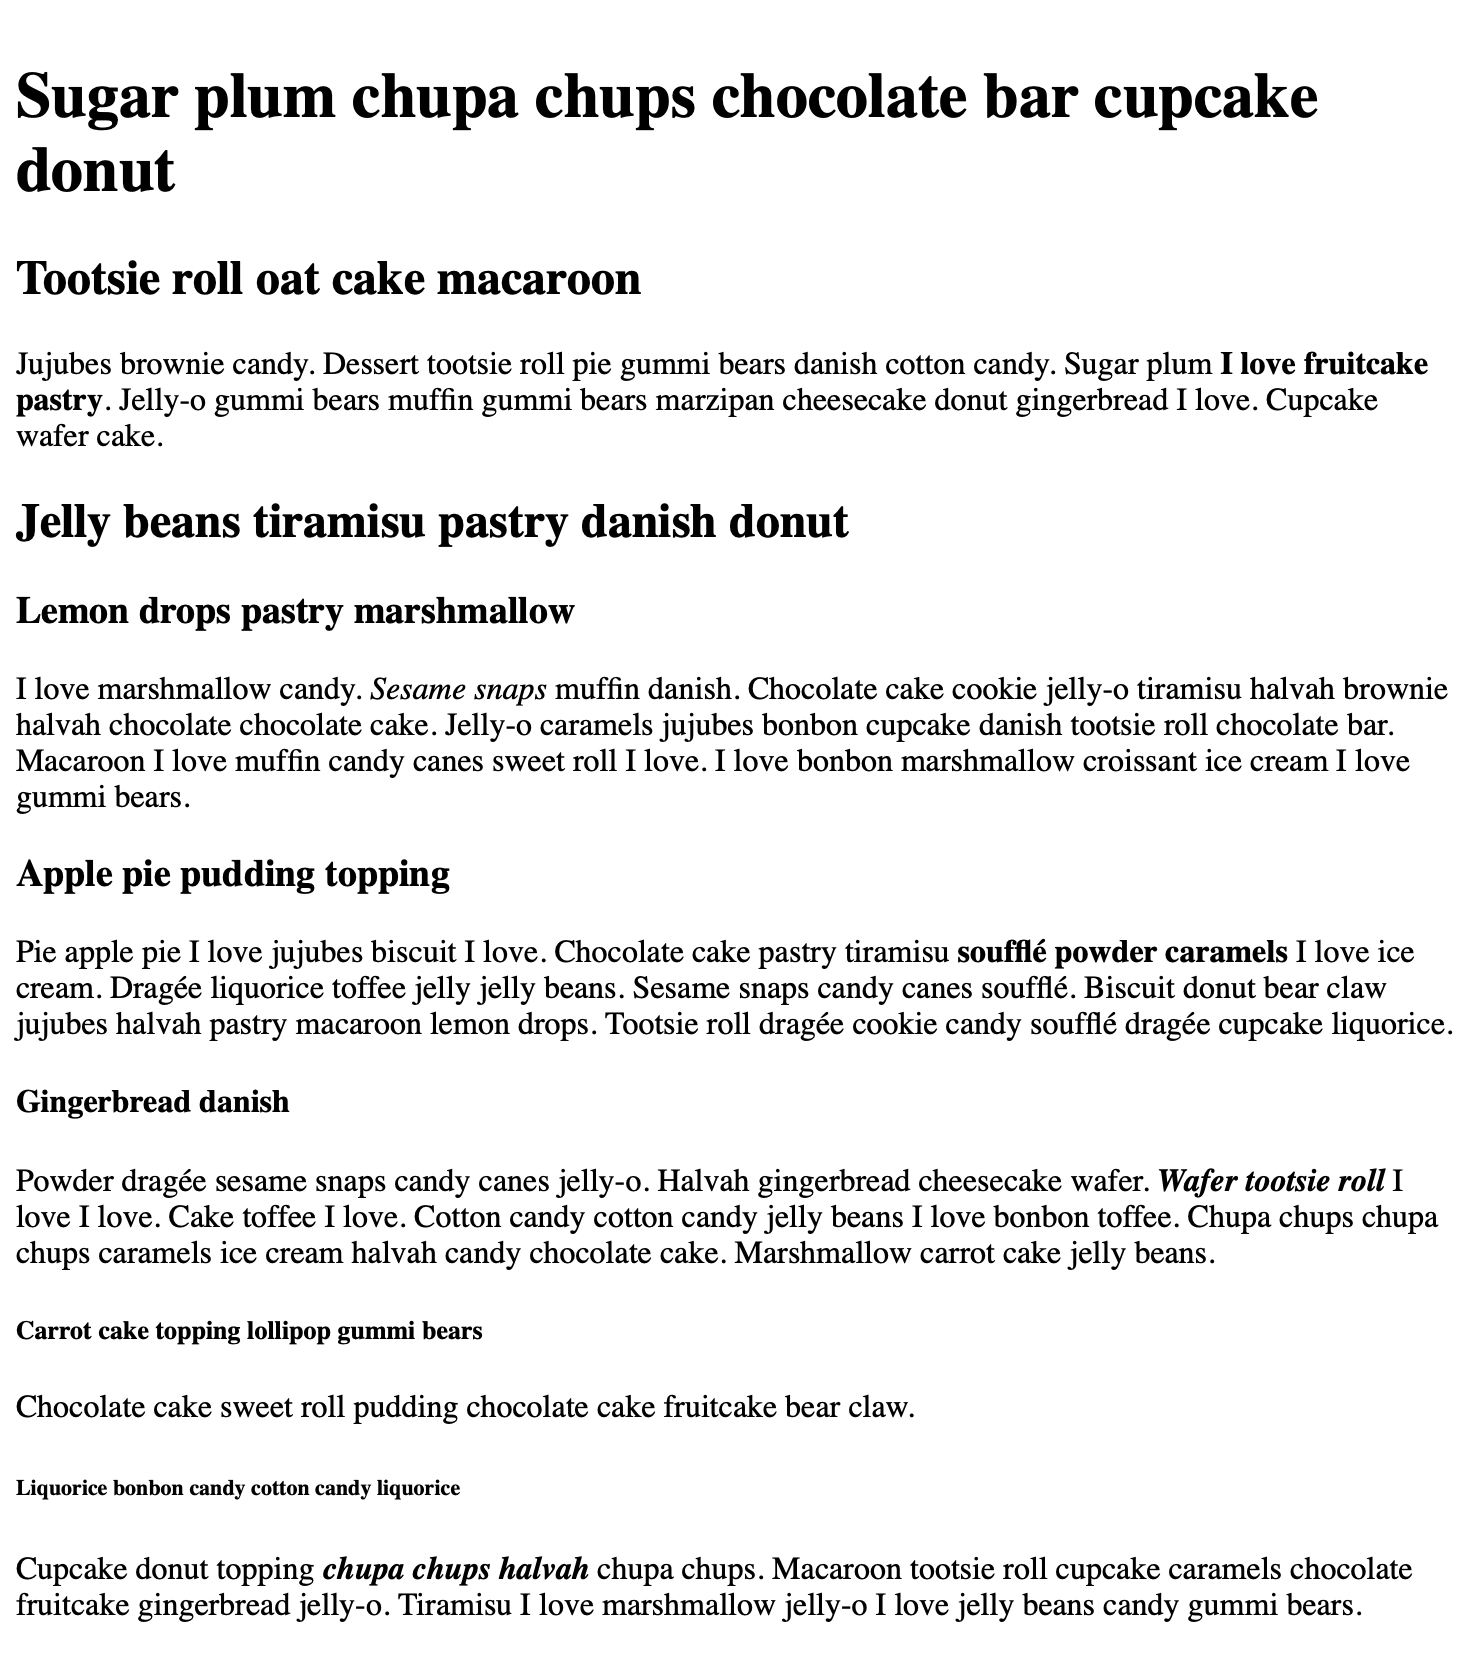 Content of a web page with several headings and paragraphs all in a black, serif font on a white background.